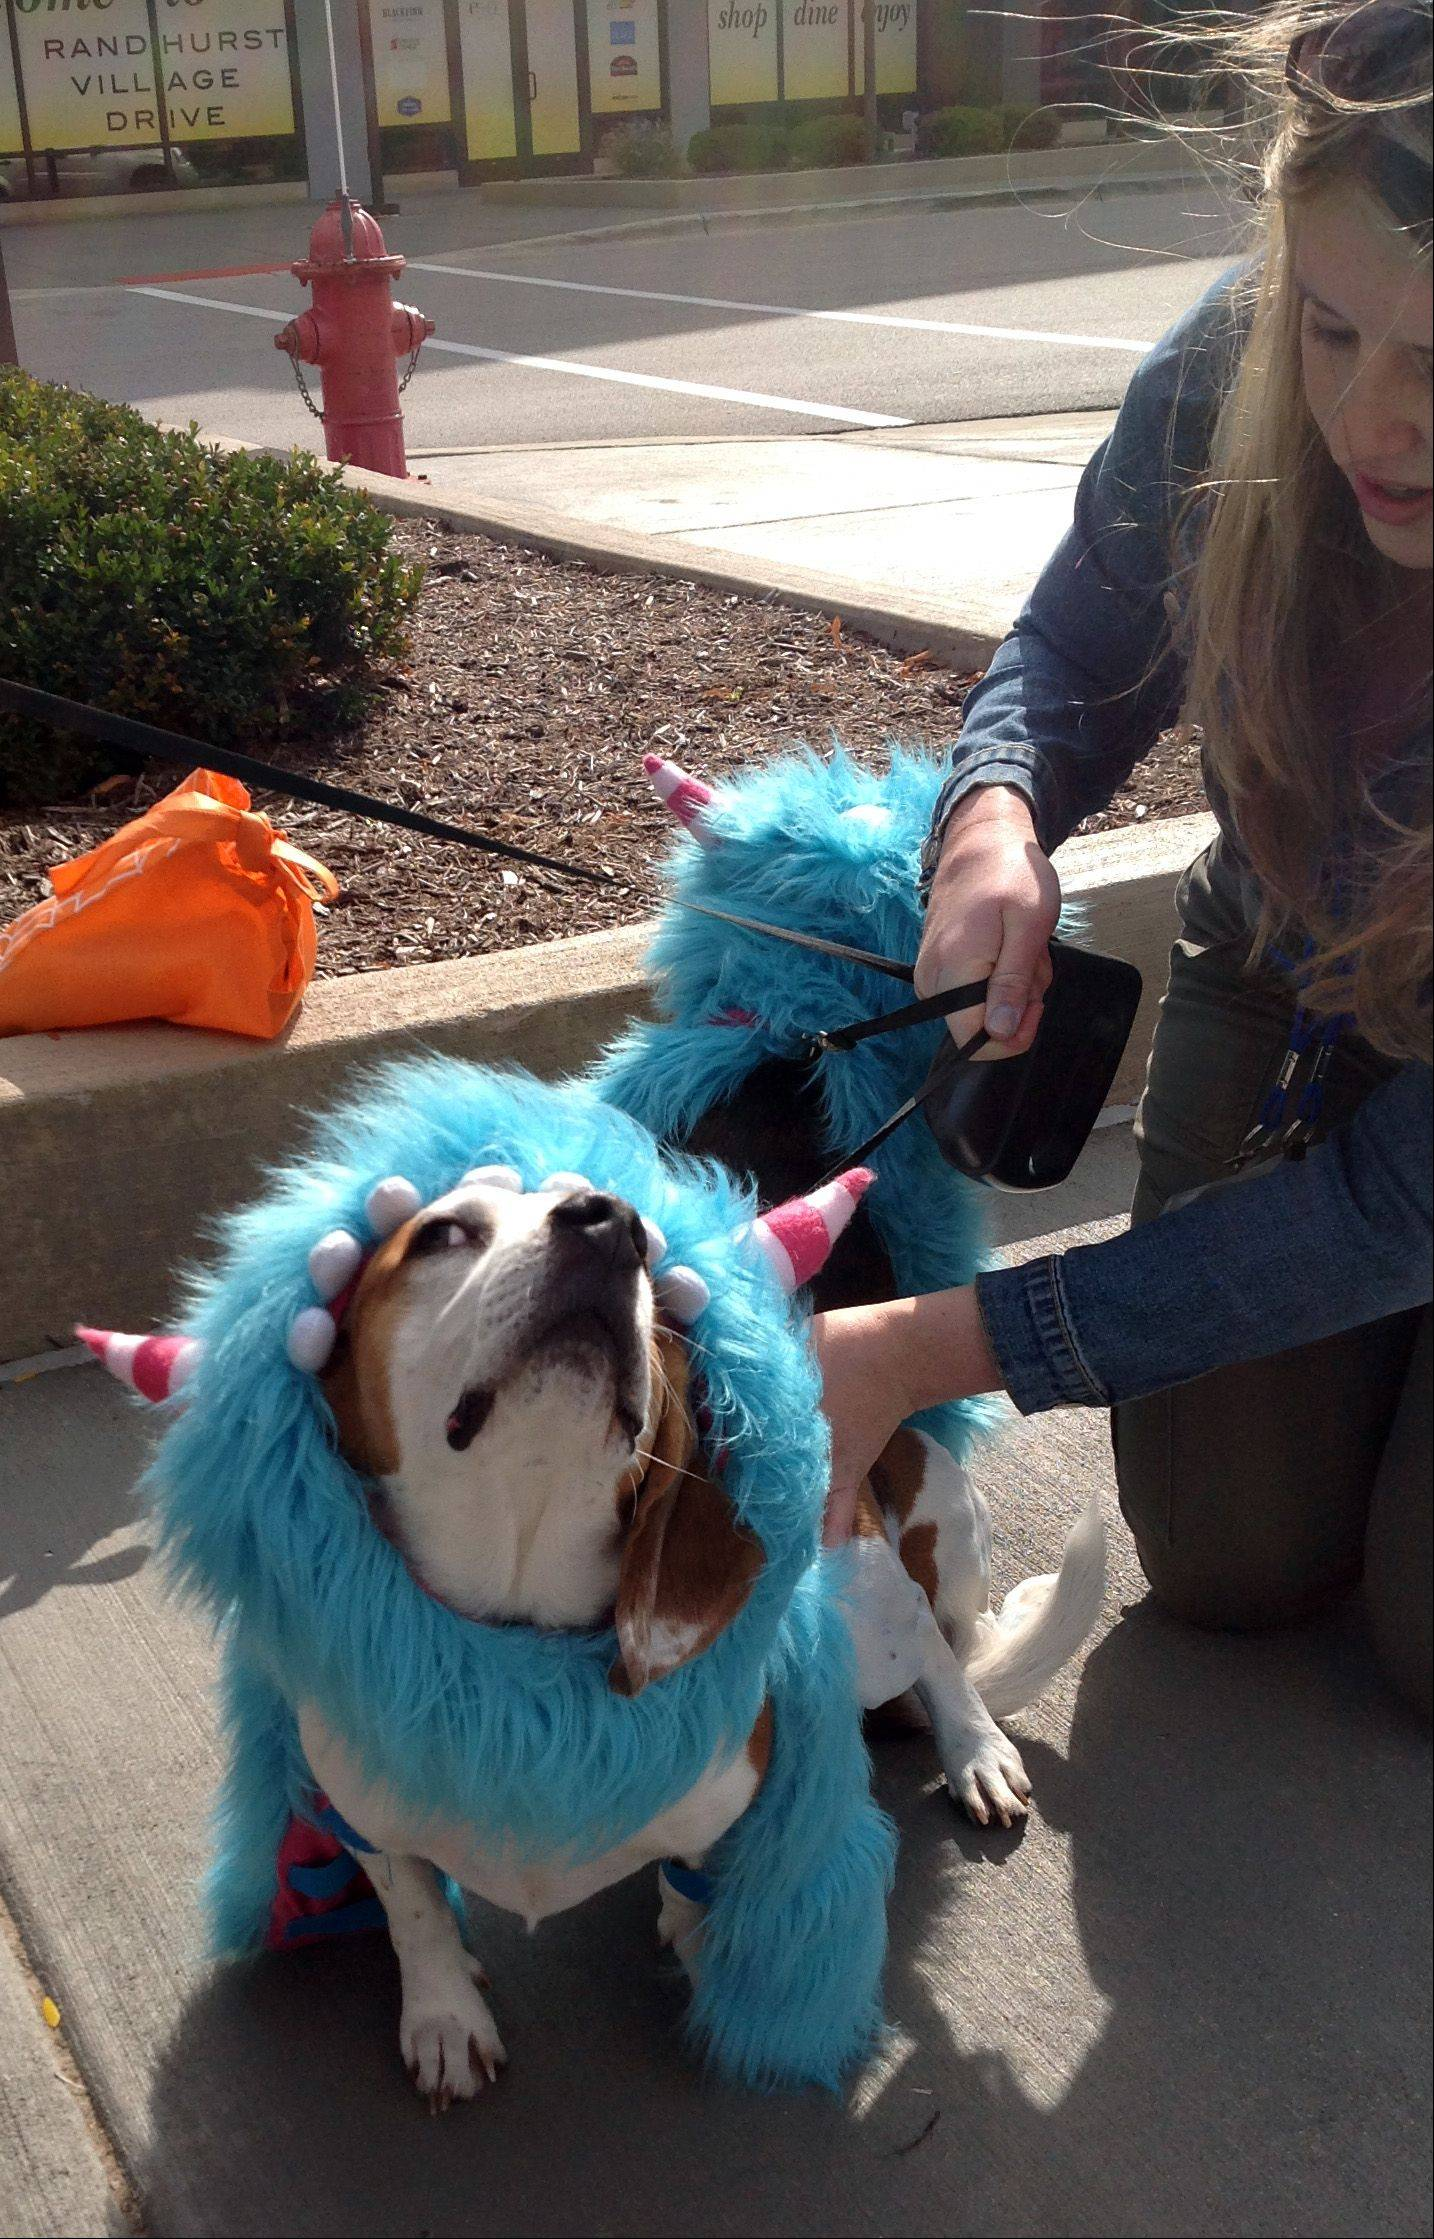 Duke, left, and Chance, two beagles from Fox River Grove, came dressed as little monsters and were the overall winners of a costumed pet parade held Saturday at Randhurst Village and sponsored by the Daily Herald. The parade kicked off the free Hoots and H�owls Halloween event.